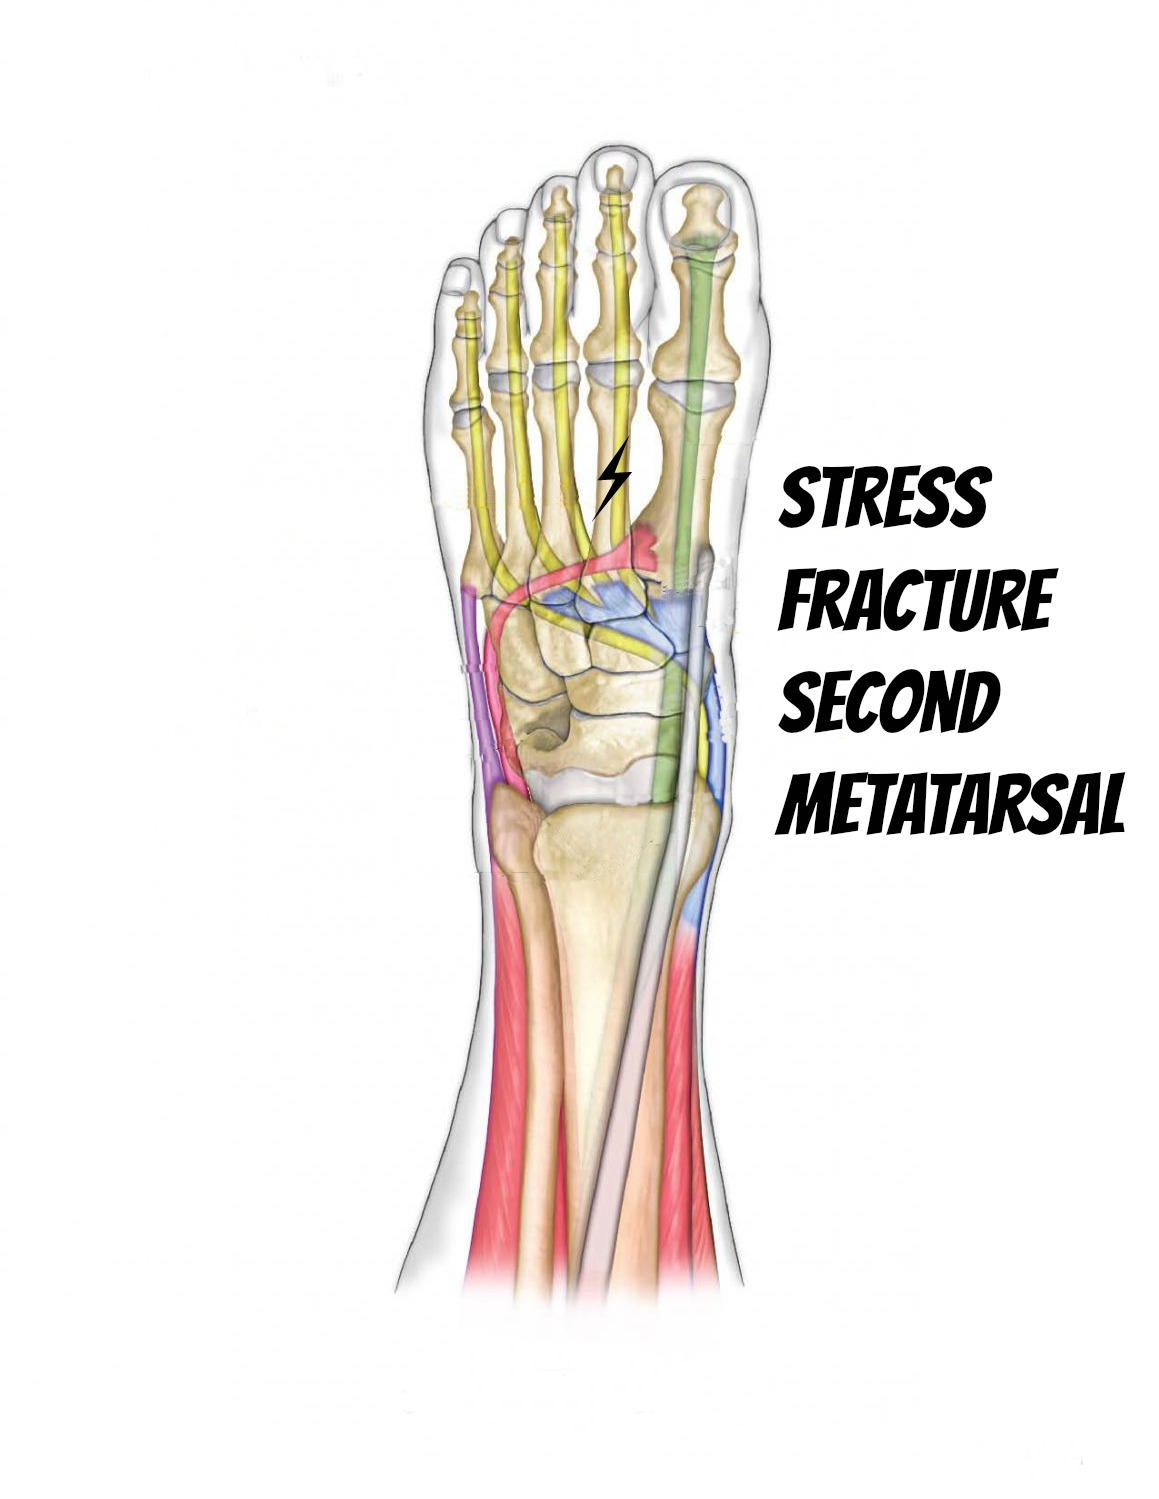 Stress Fracture Of the Second Metatarsal - Self Help Tips to ...